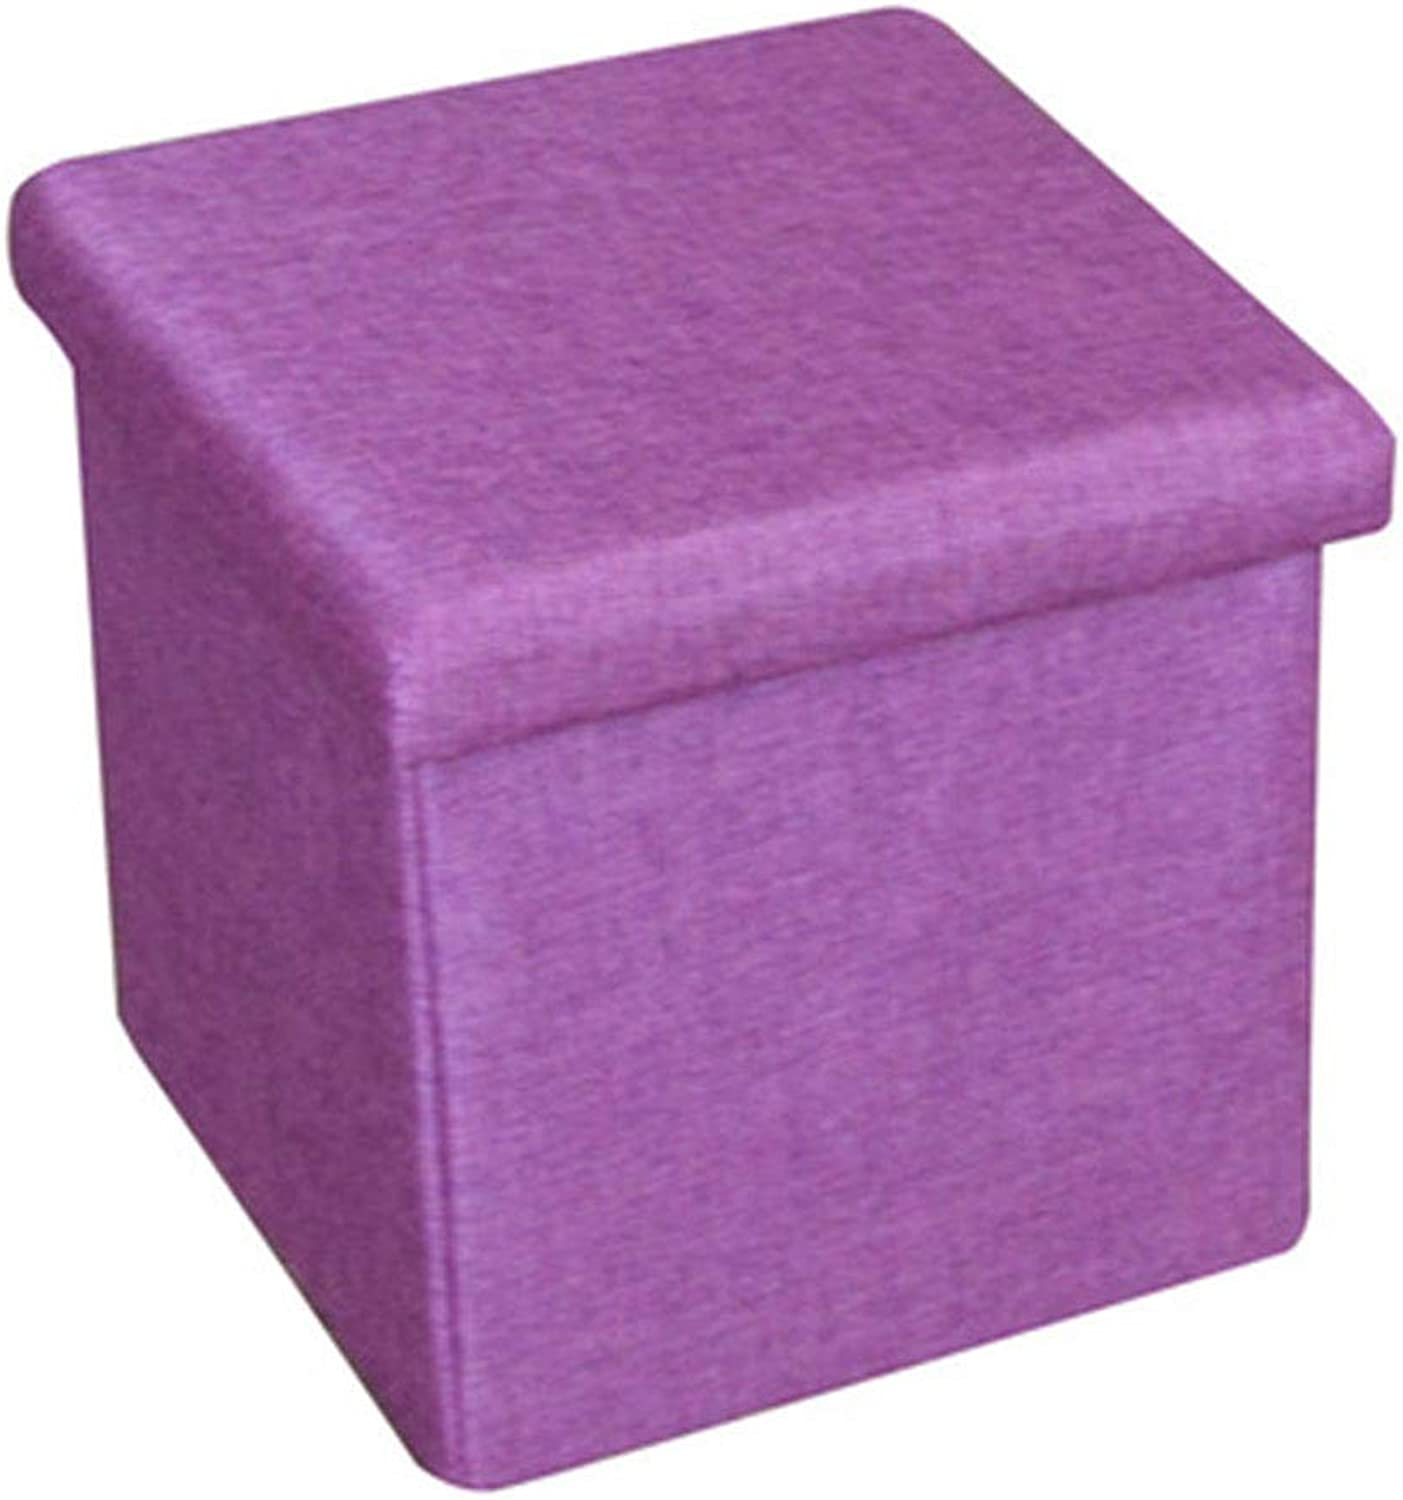 Fashion Storage can sit People Storage shoes Footstool Multi-Function Storage Bench Linen Series,Purple